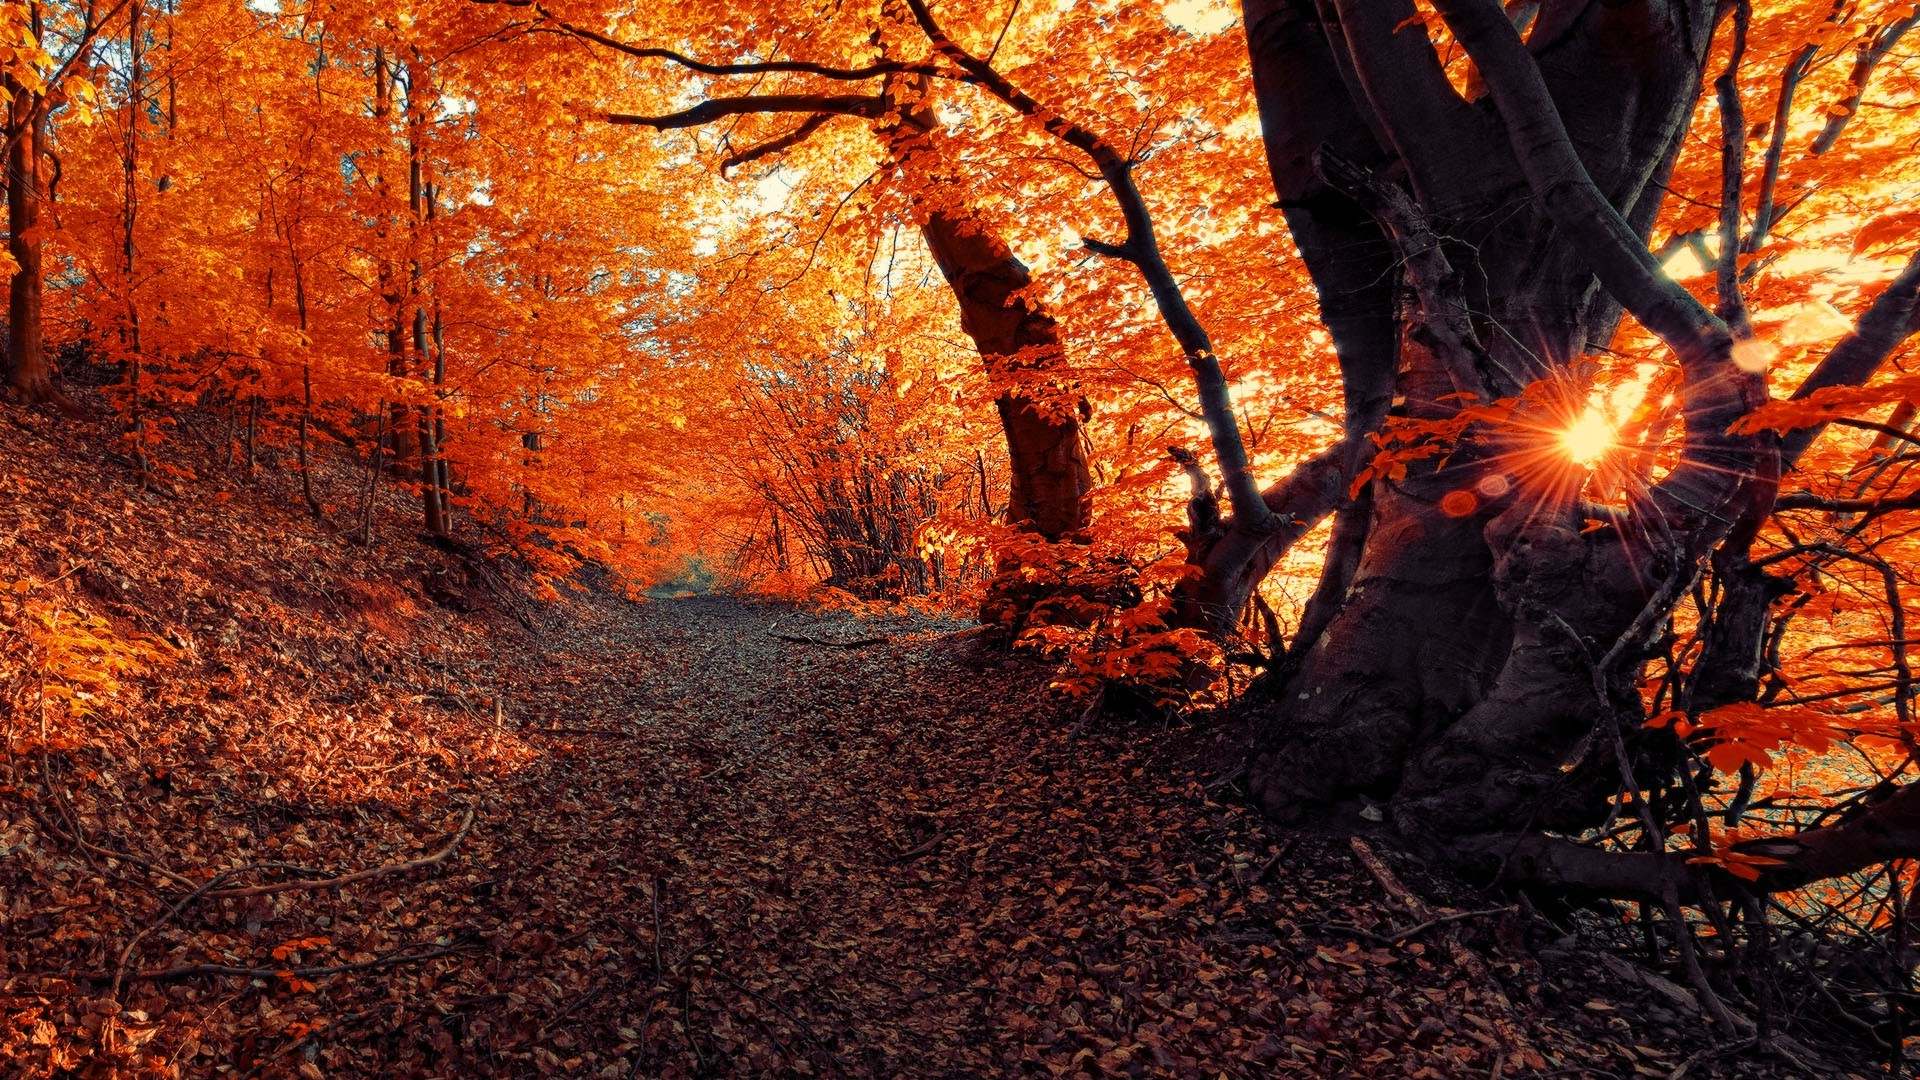 Falling Leaves Animated Wallpaper Landscape Fall Seasons Forest Sunset Nature